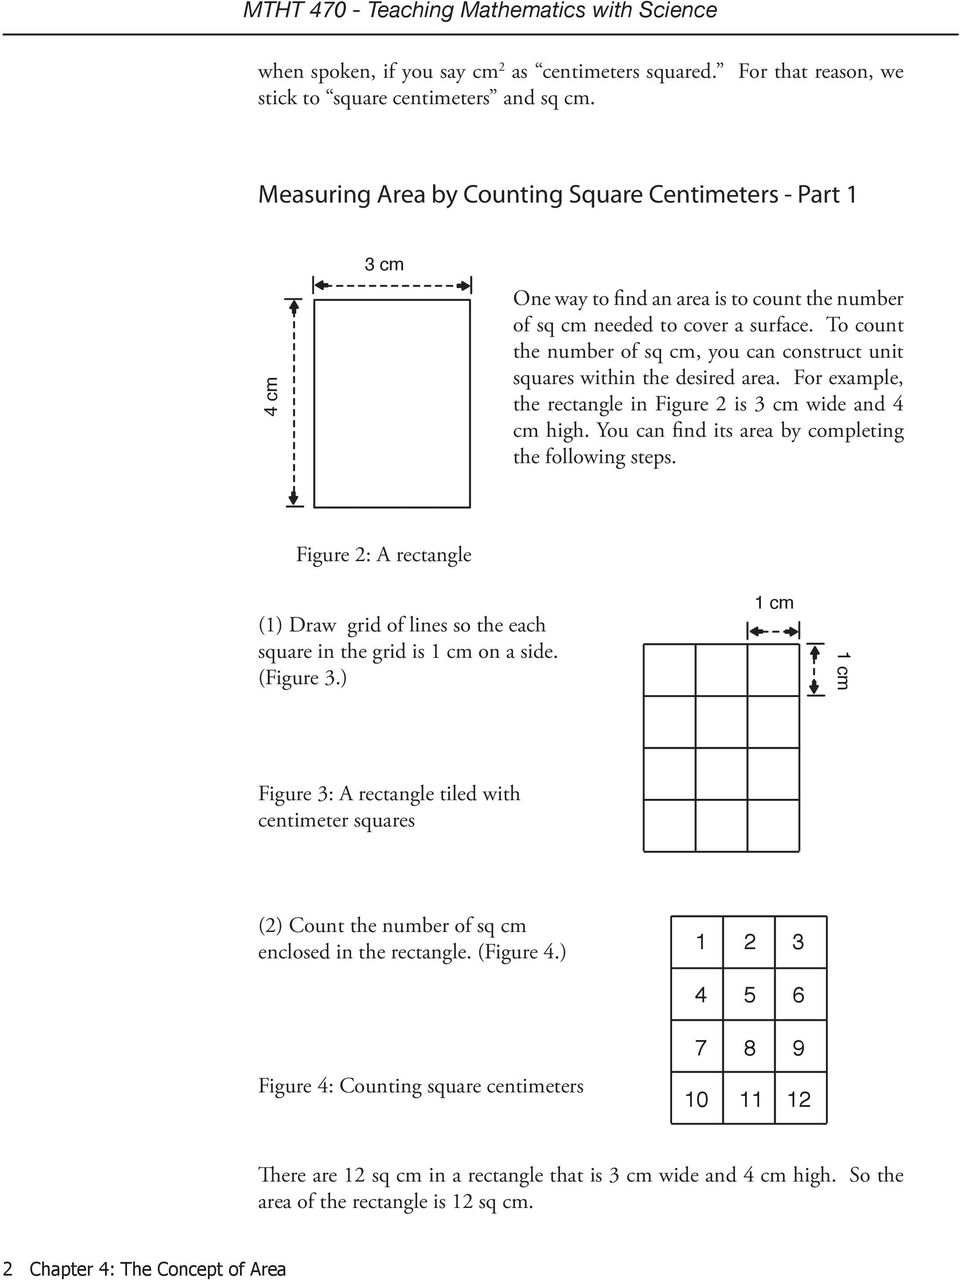 To count the number of sq cm, you can construct unit squares within the desired area. For example, the rectangle in Figure 2 is 3 cm wide and 4 cm high.